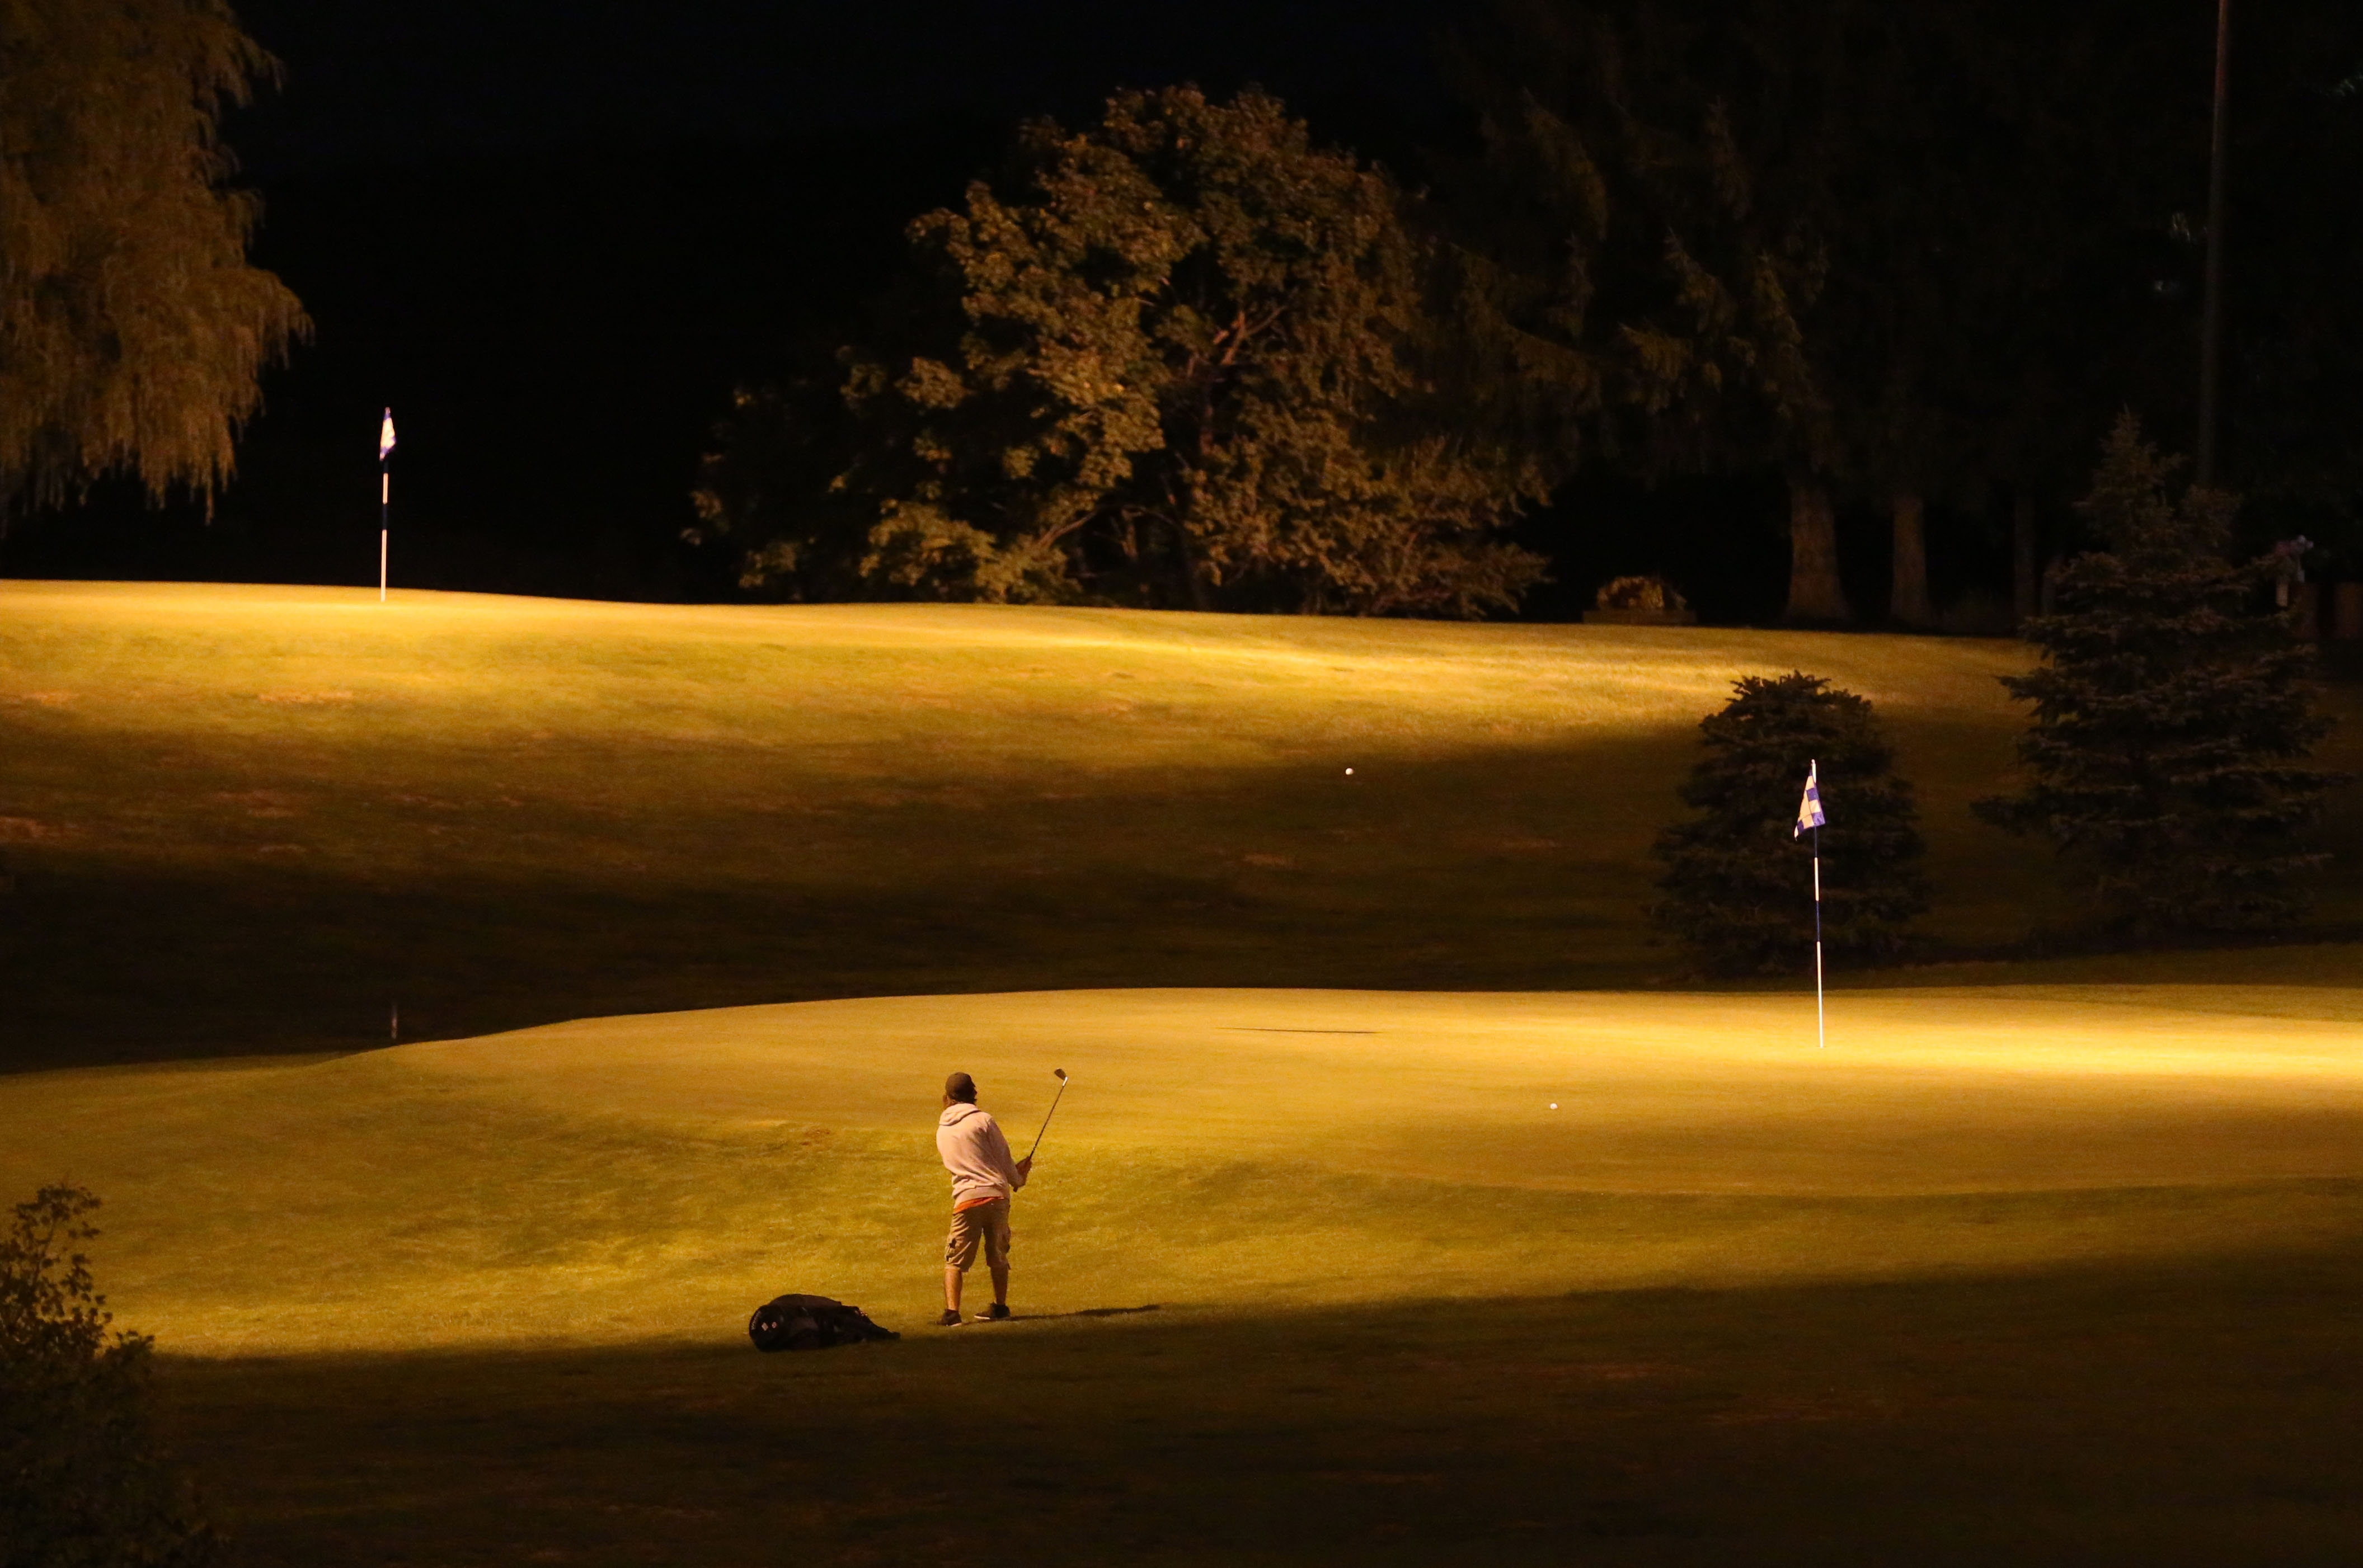 Night moves: Zach Lembke chips onto the 10th green during a recent round at Bob-O-Link Golf Club on Transit Road in Orchard Park, which also offers glow-in-the-dark balls, below, for $10. The last tee time at the family-run operation is at 9:30 p.m., and there is also a snack bar with beer, wine and food available.  Photos by Sharon Cantillon/Buffalo News